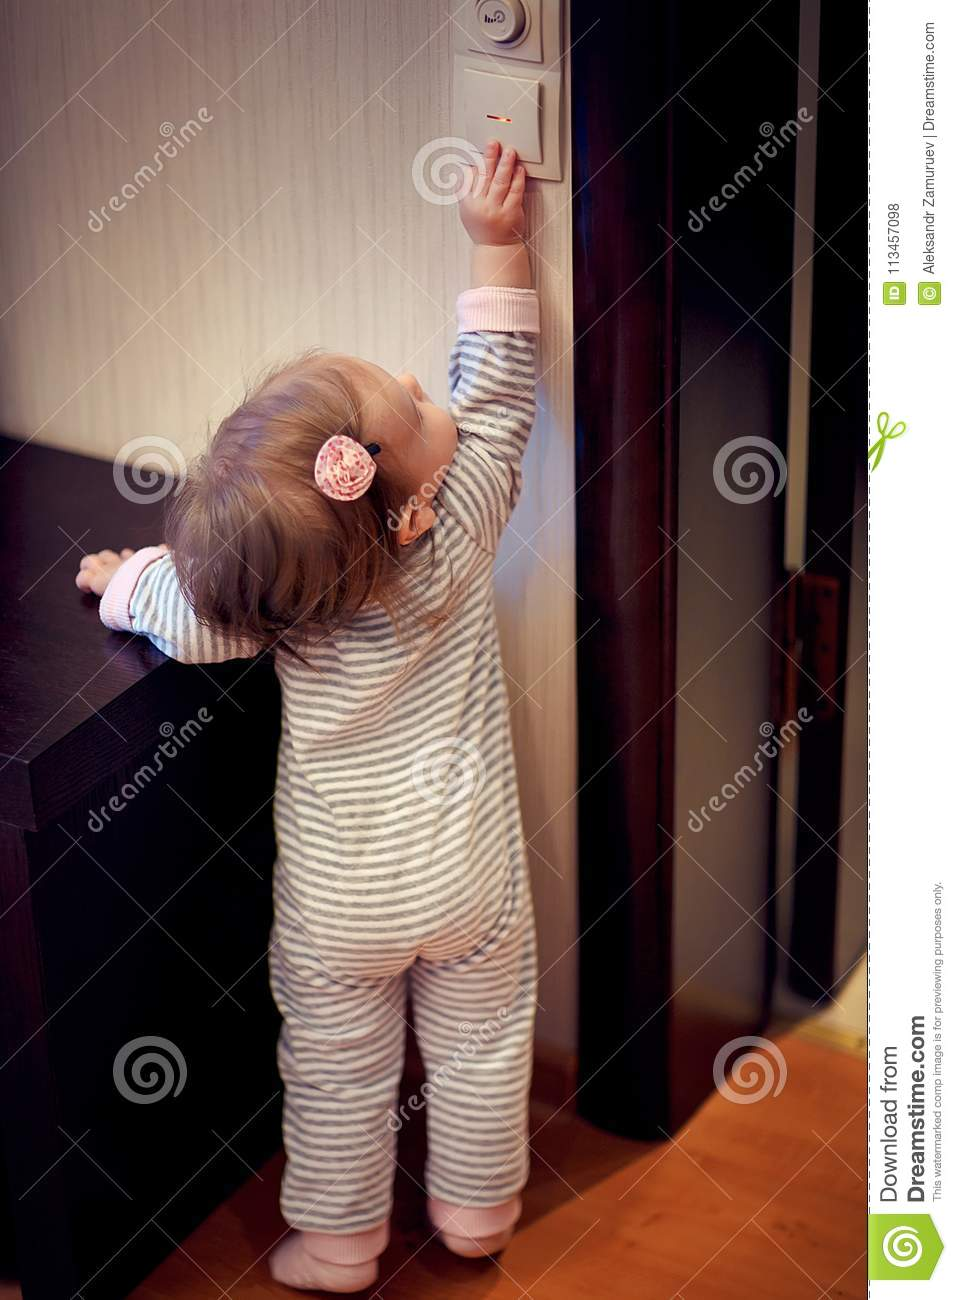 Young girl standing and touching switch